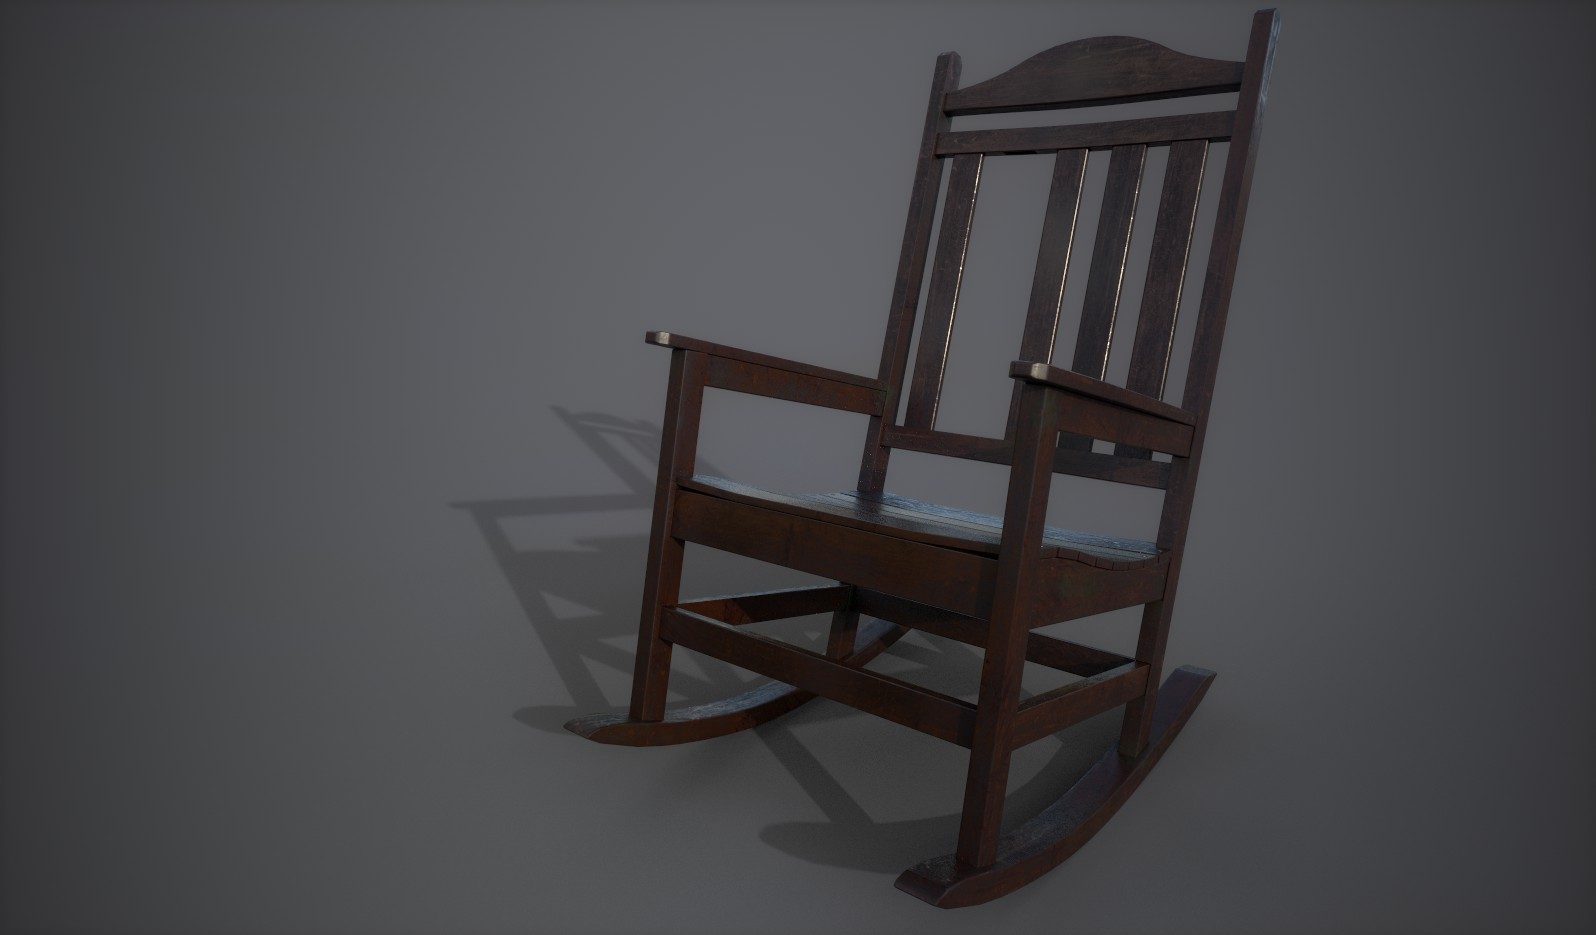 Thomas fraser thomas fraser chair03